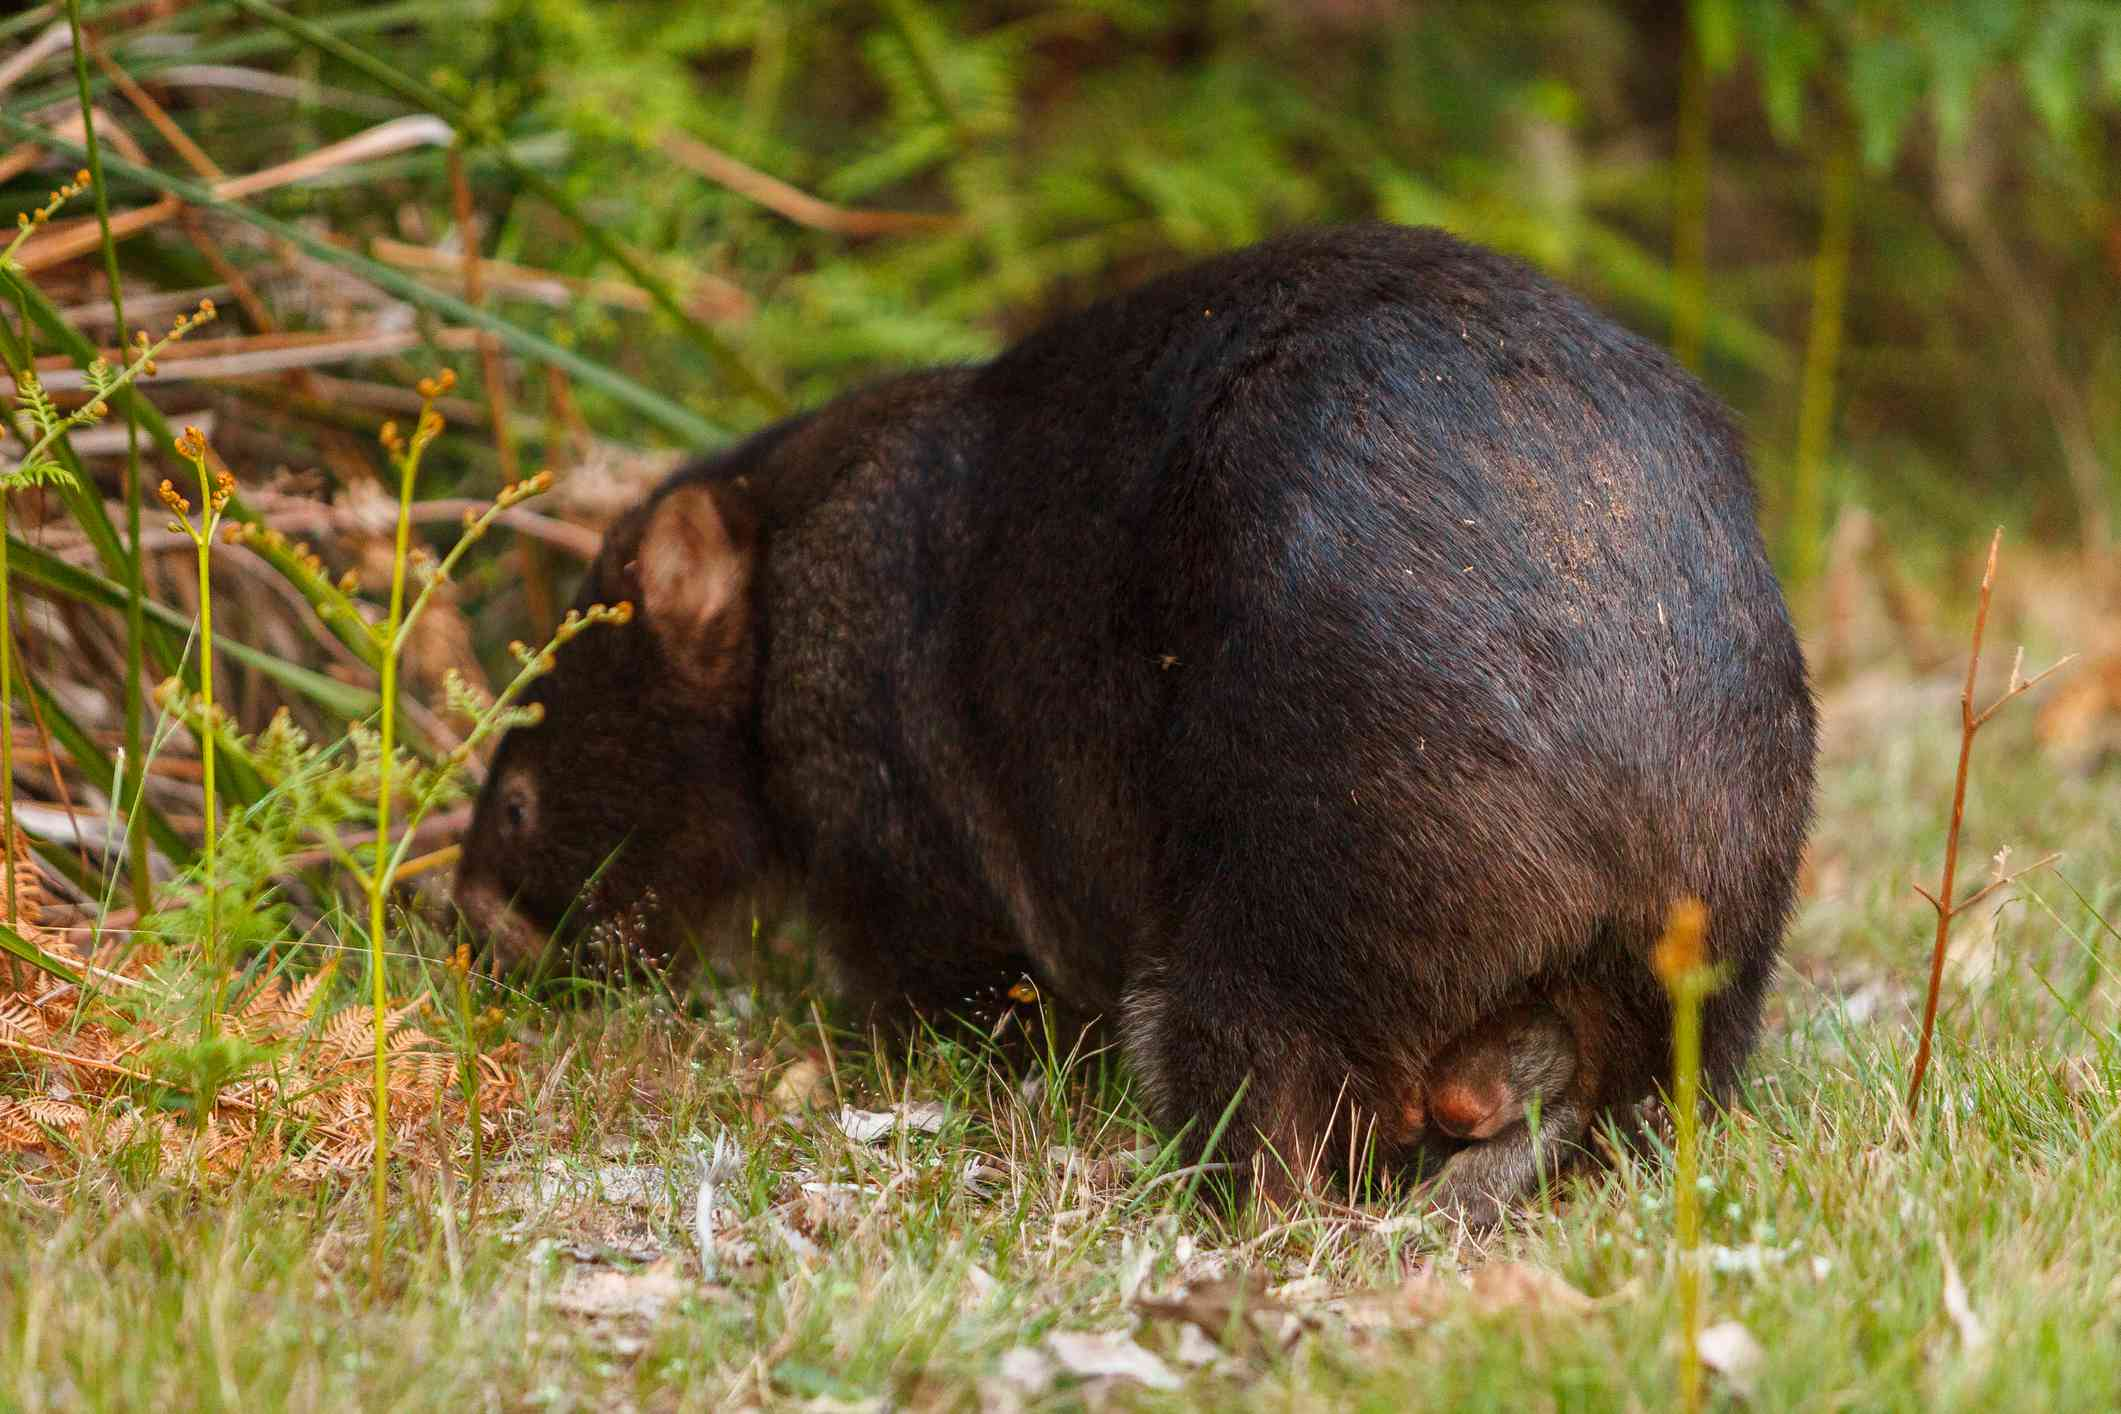 A female wombat (sow) with a joey peeking out from its pouch